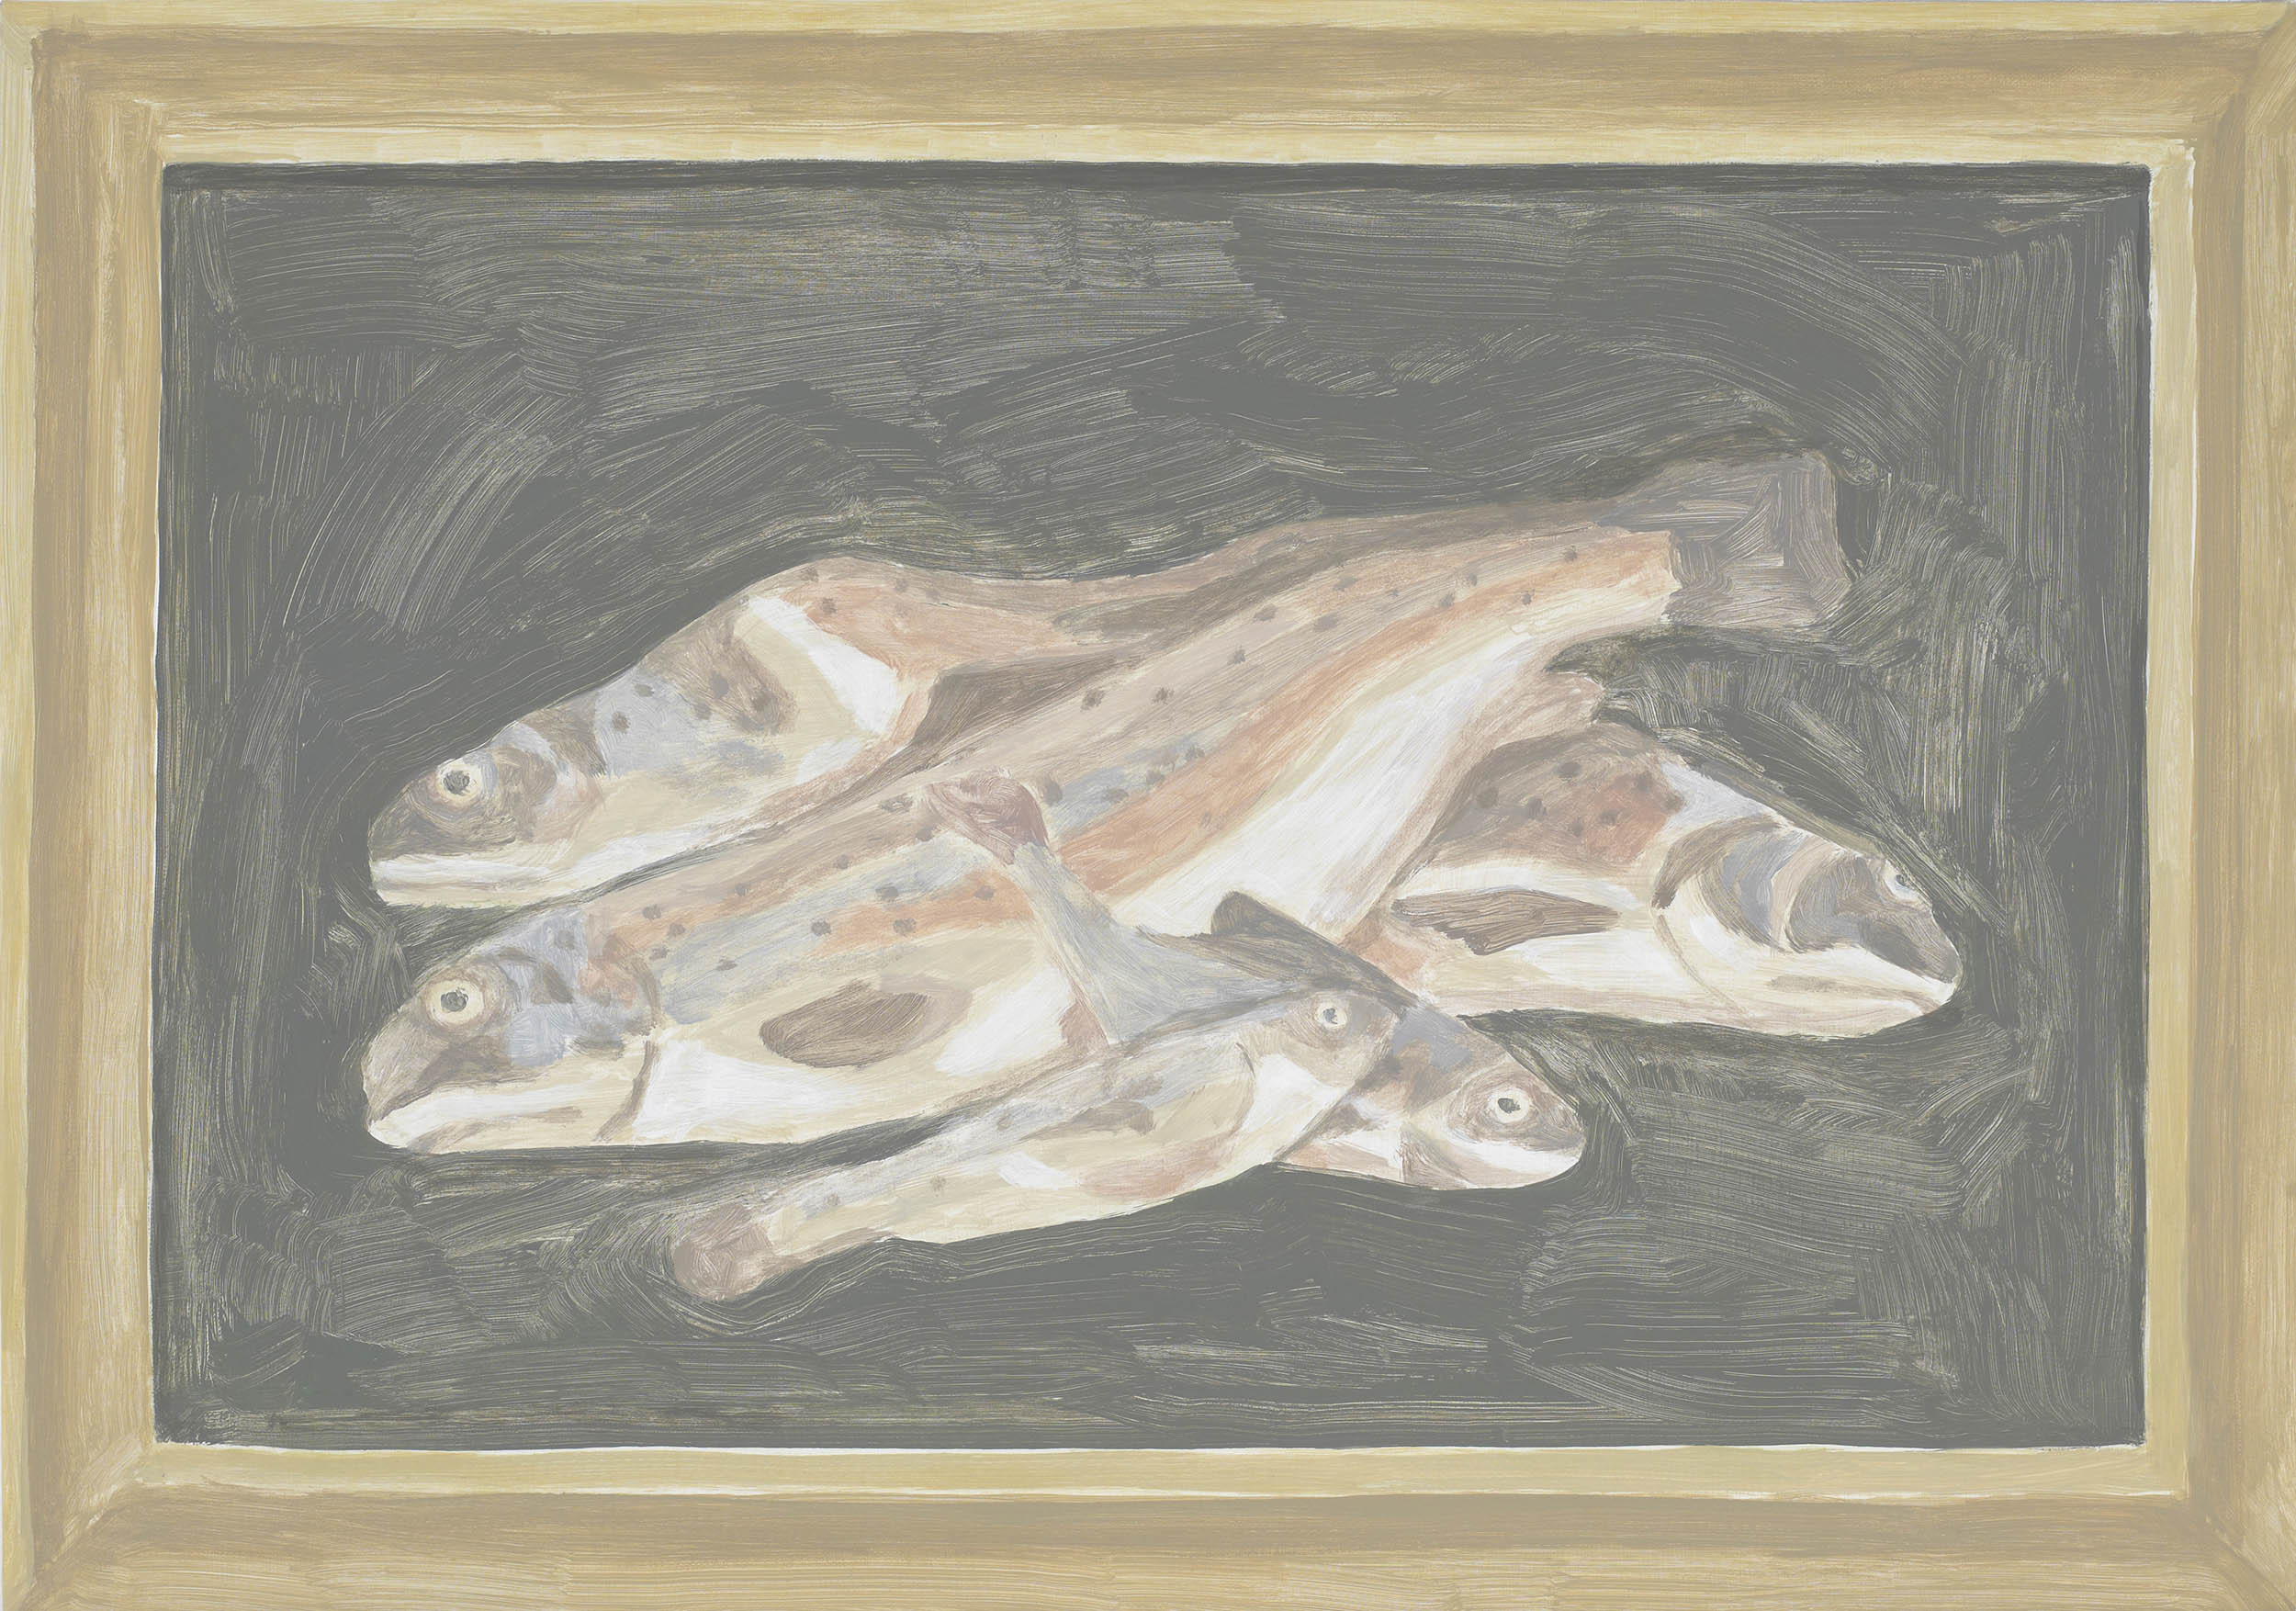 Framed Painting: Fish, acrylic on canvas, 17 x 24.25 inches, 2013.